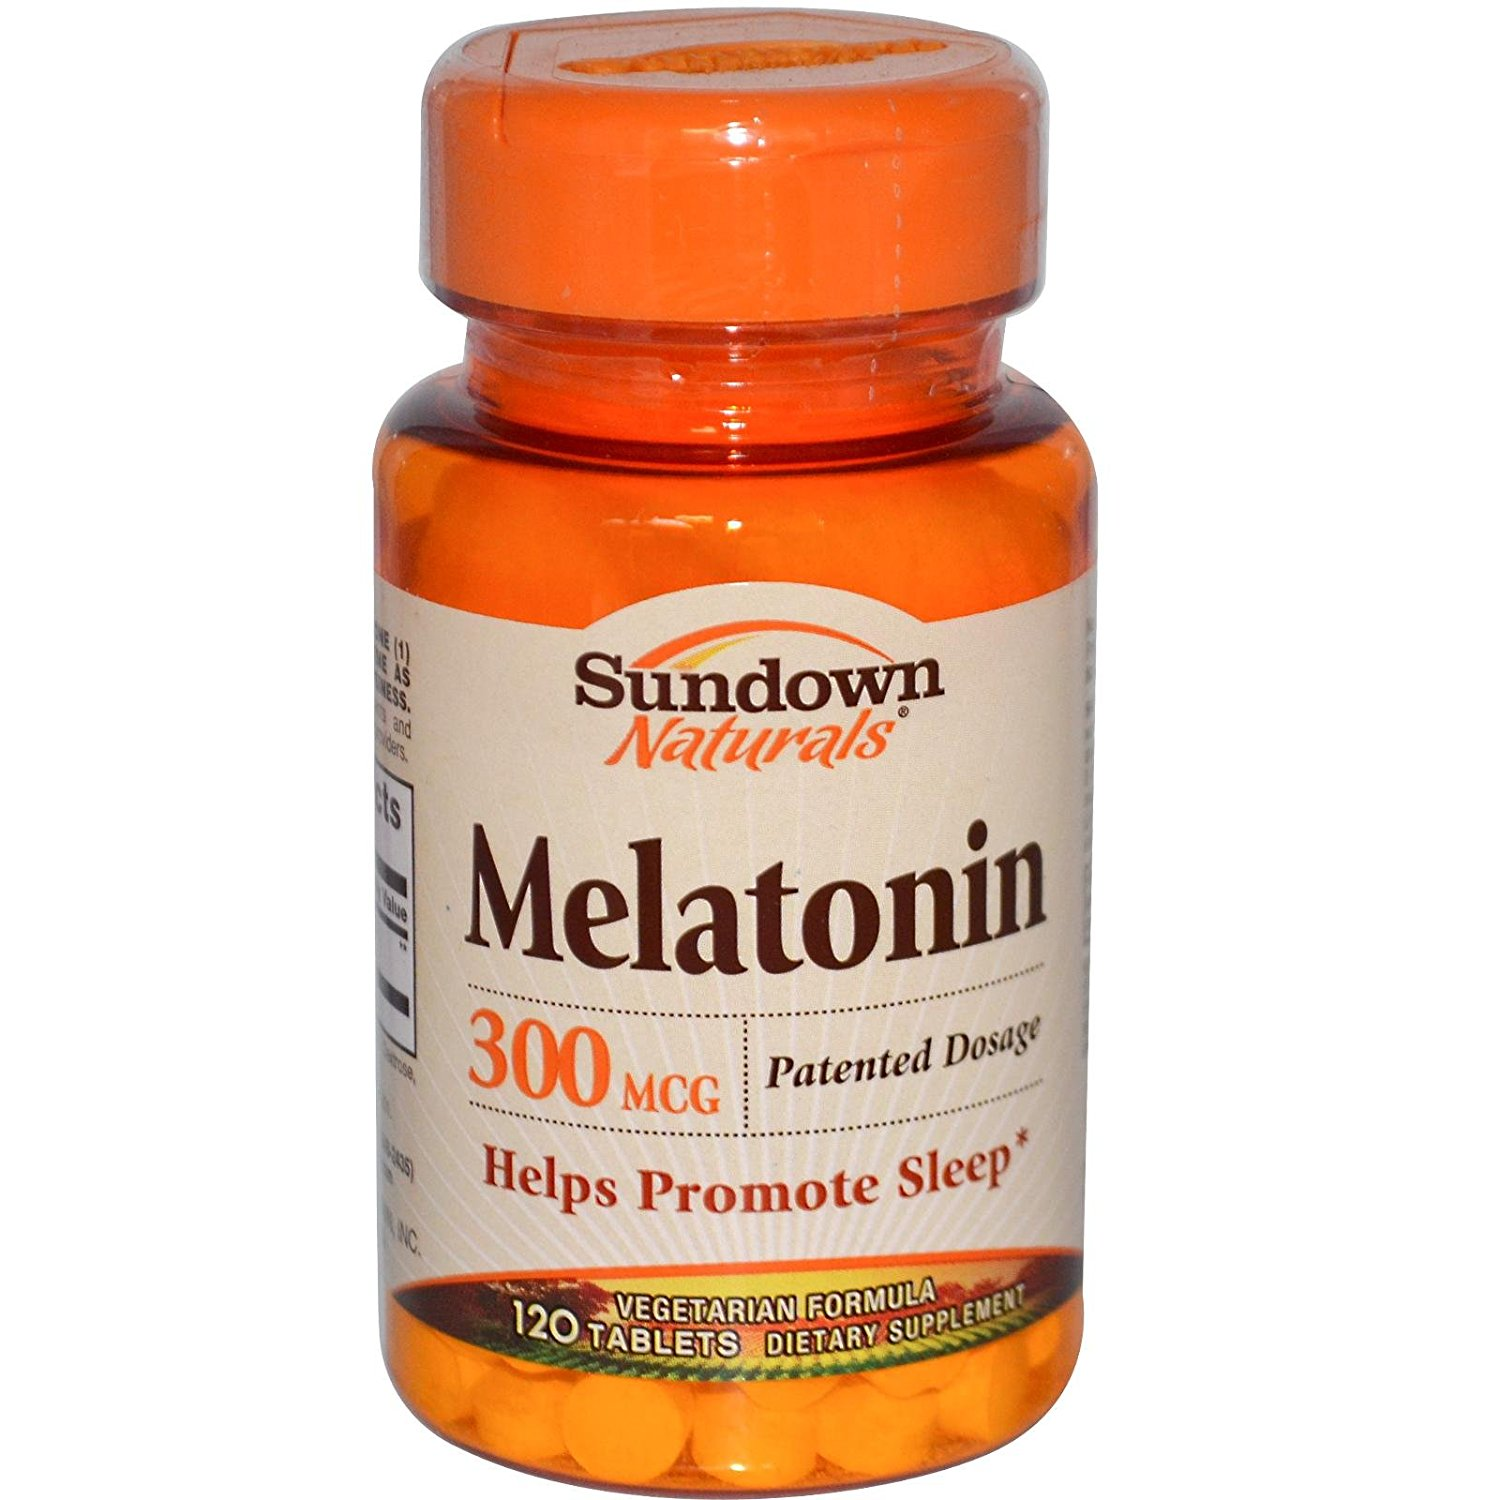 Sundown Naturals Melatonin 300 mcg - 120 Tablets